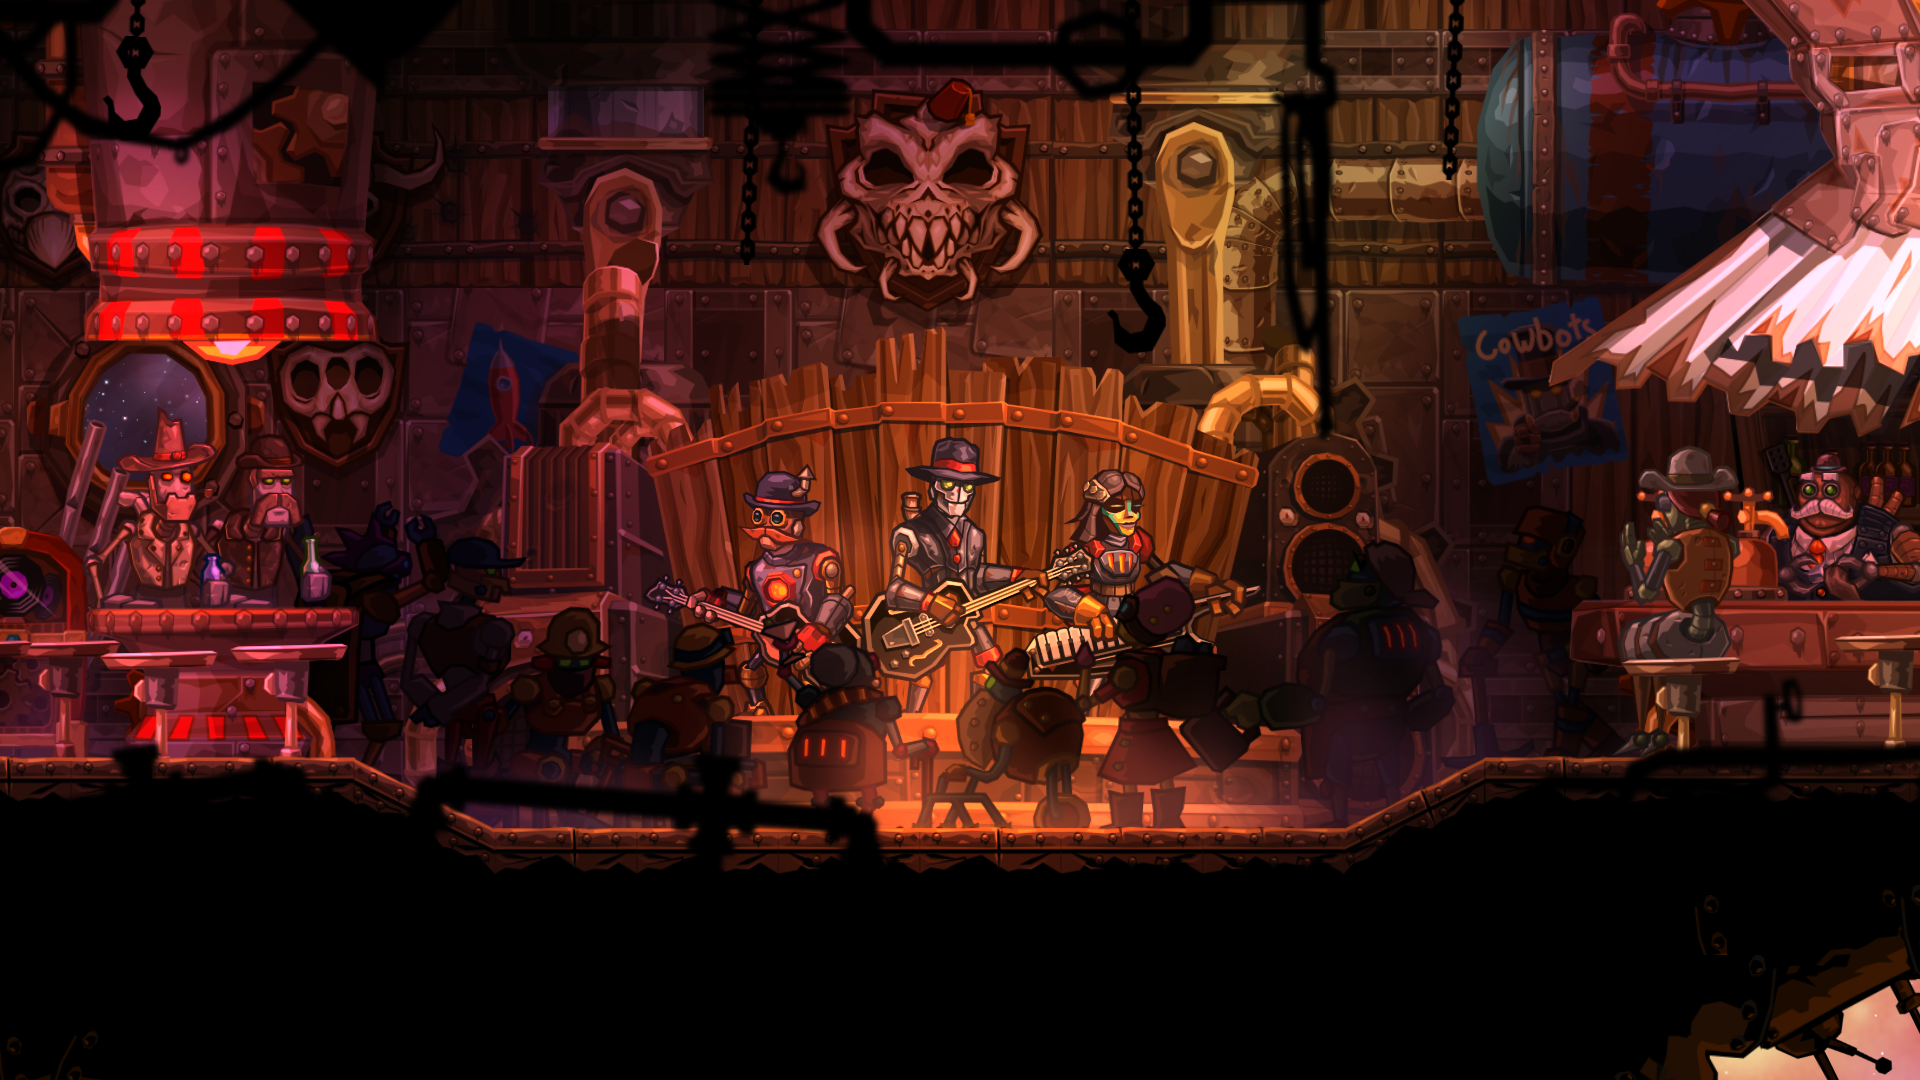 Image & Form teamed up with Steam Powered Giraffe for SteamWorld Heist's soundtrack.